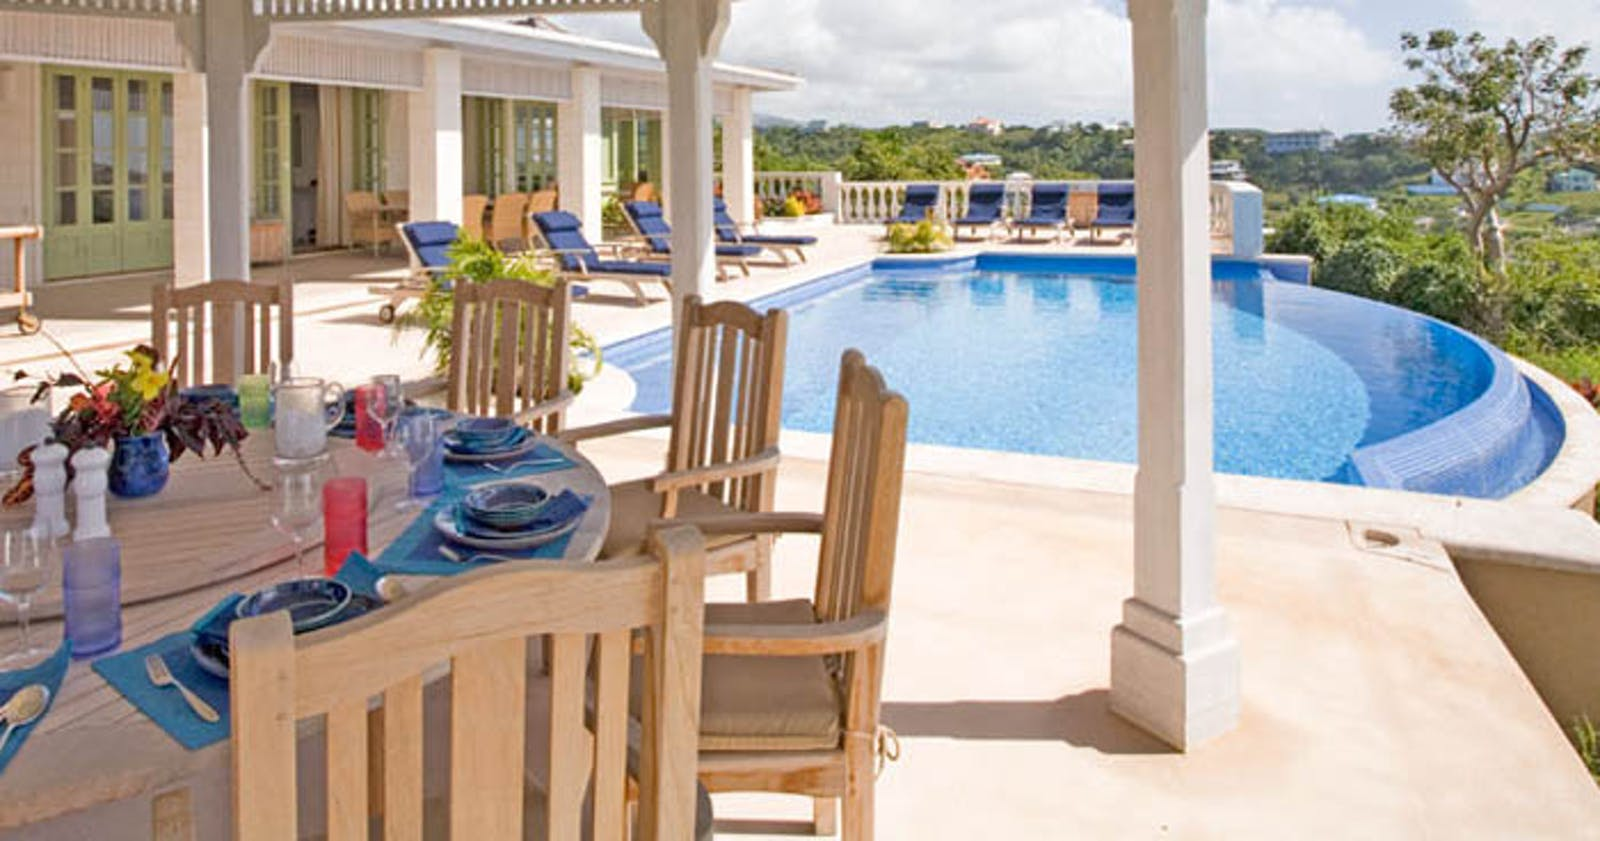 Lunch Table and Pool View at Calabash Villa, Grenada